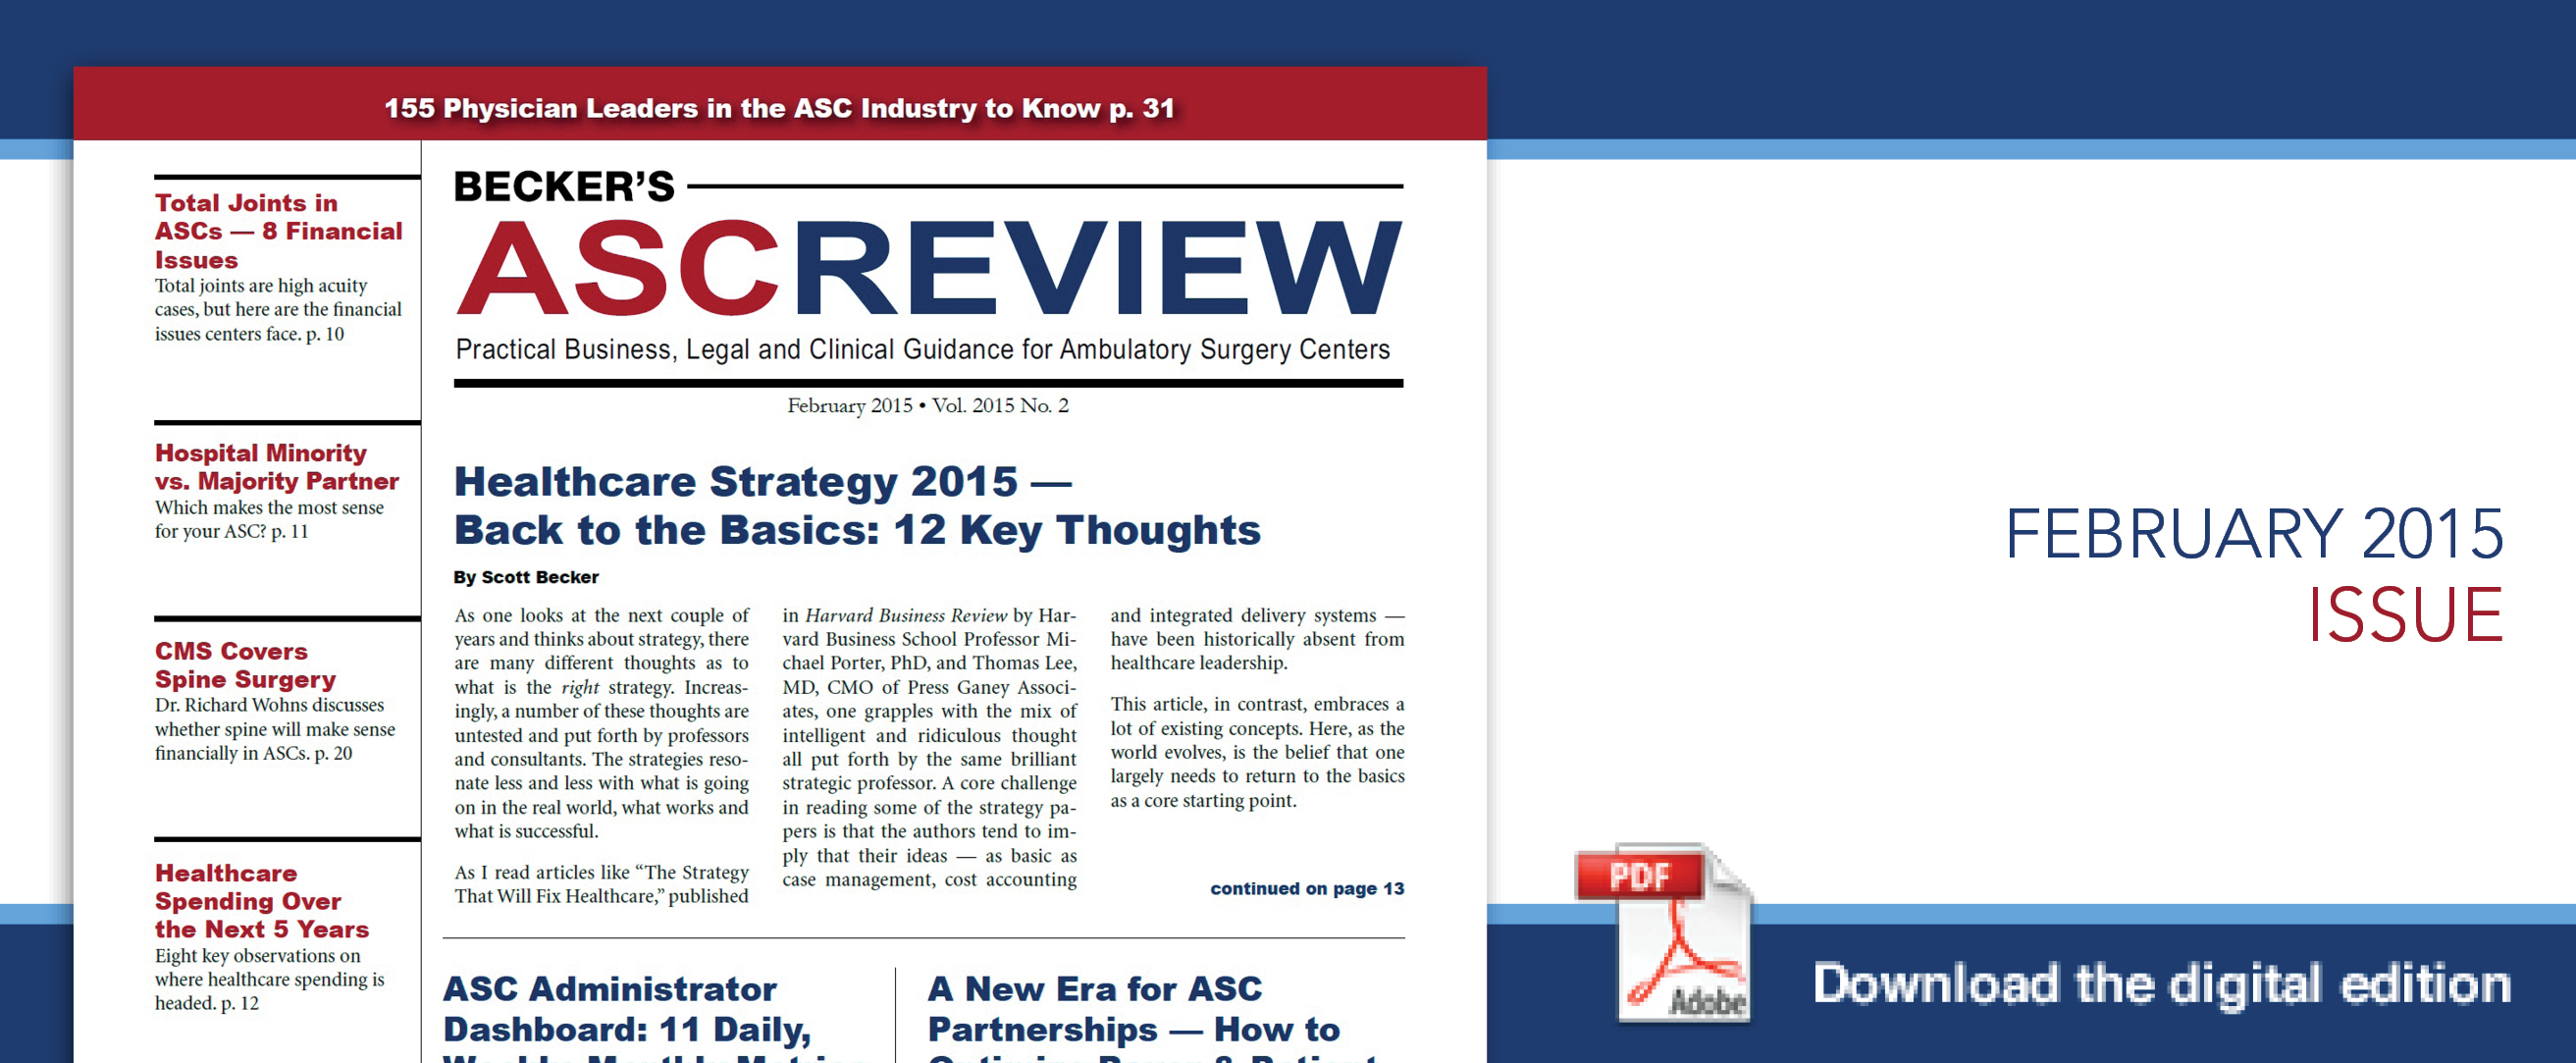 ASC Feb 2015 Current Issue